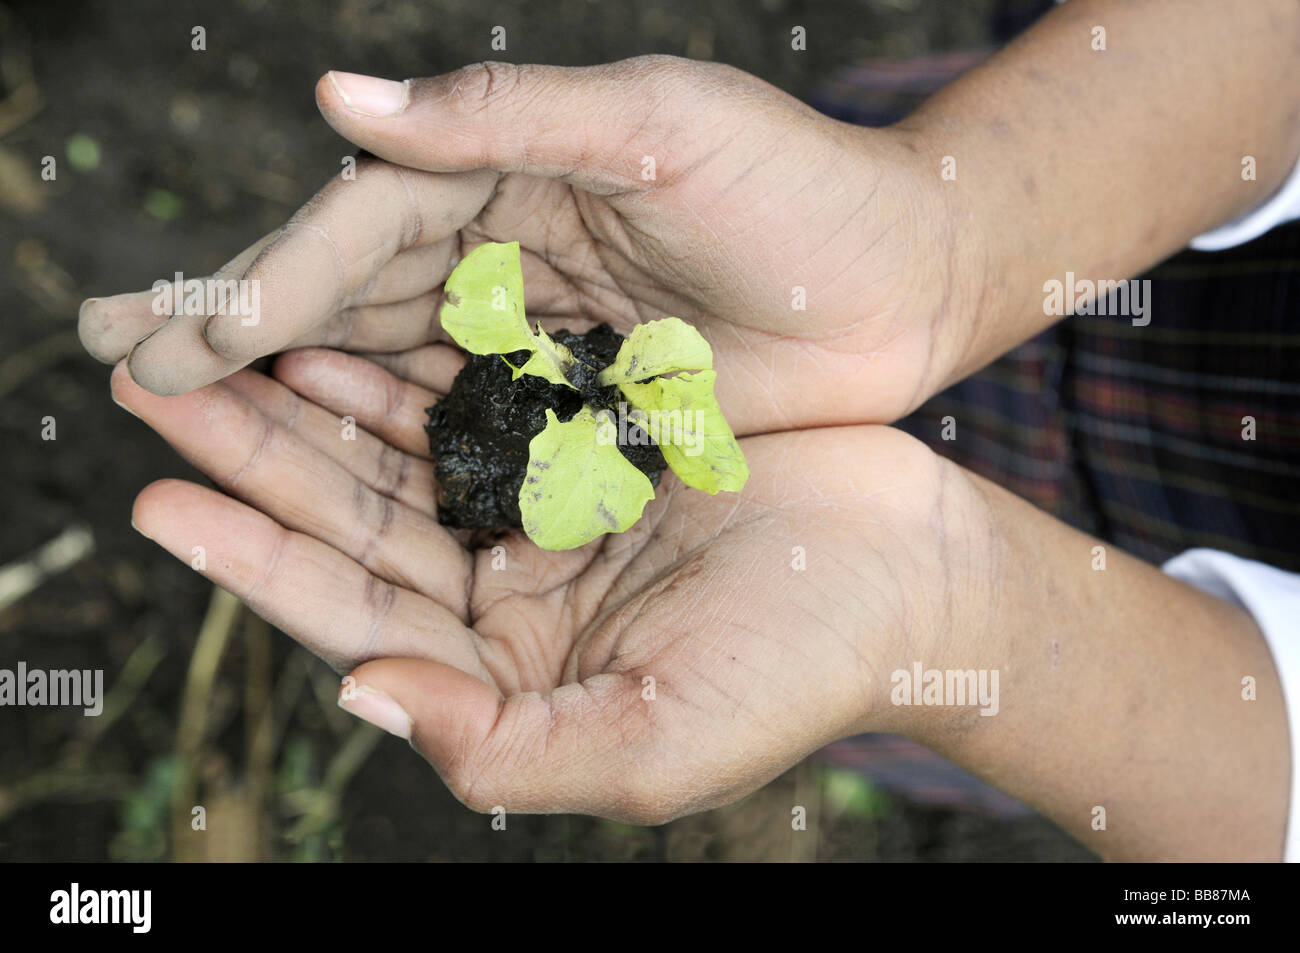 Small lettuce plant, seedling, in the hands of a girl, who is being trained in horticulture as part of an urban - Stock Image